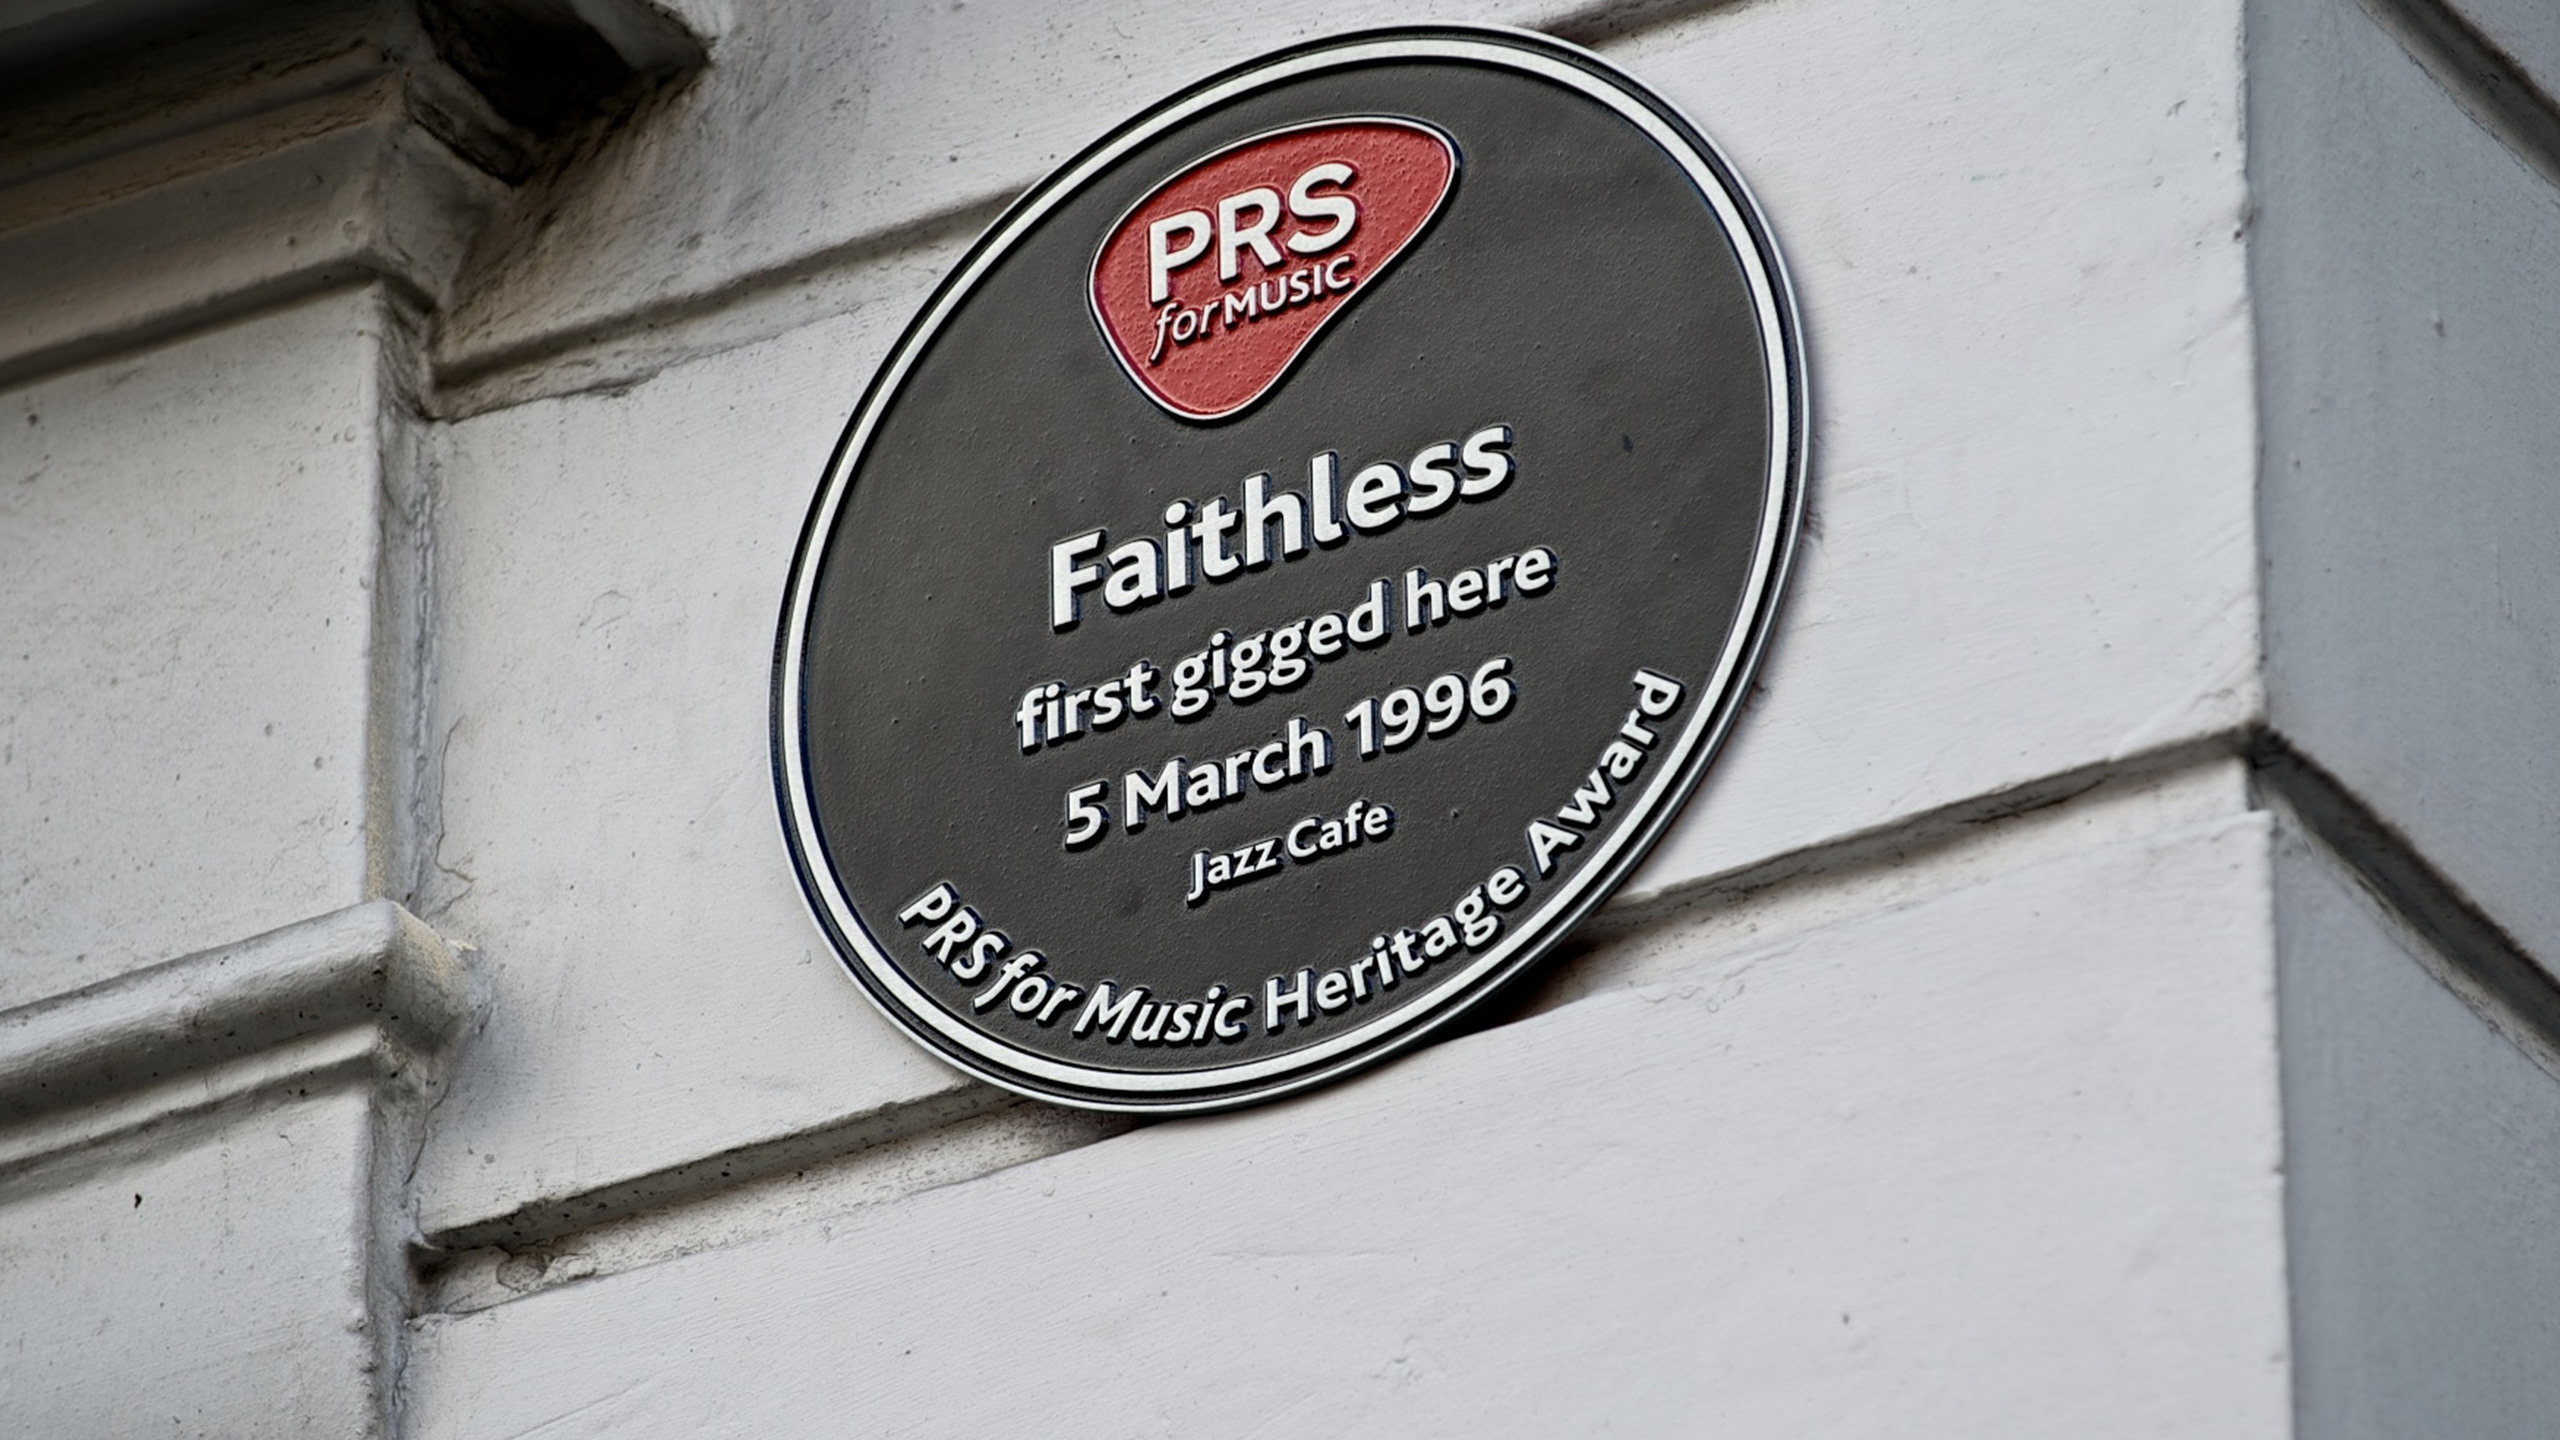 The Jazz Cafe Heritage Award for Faithless' first gig